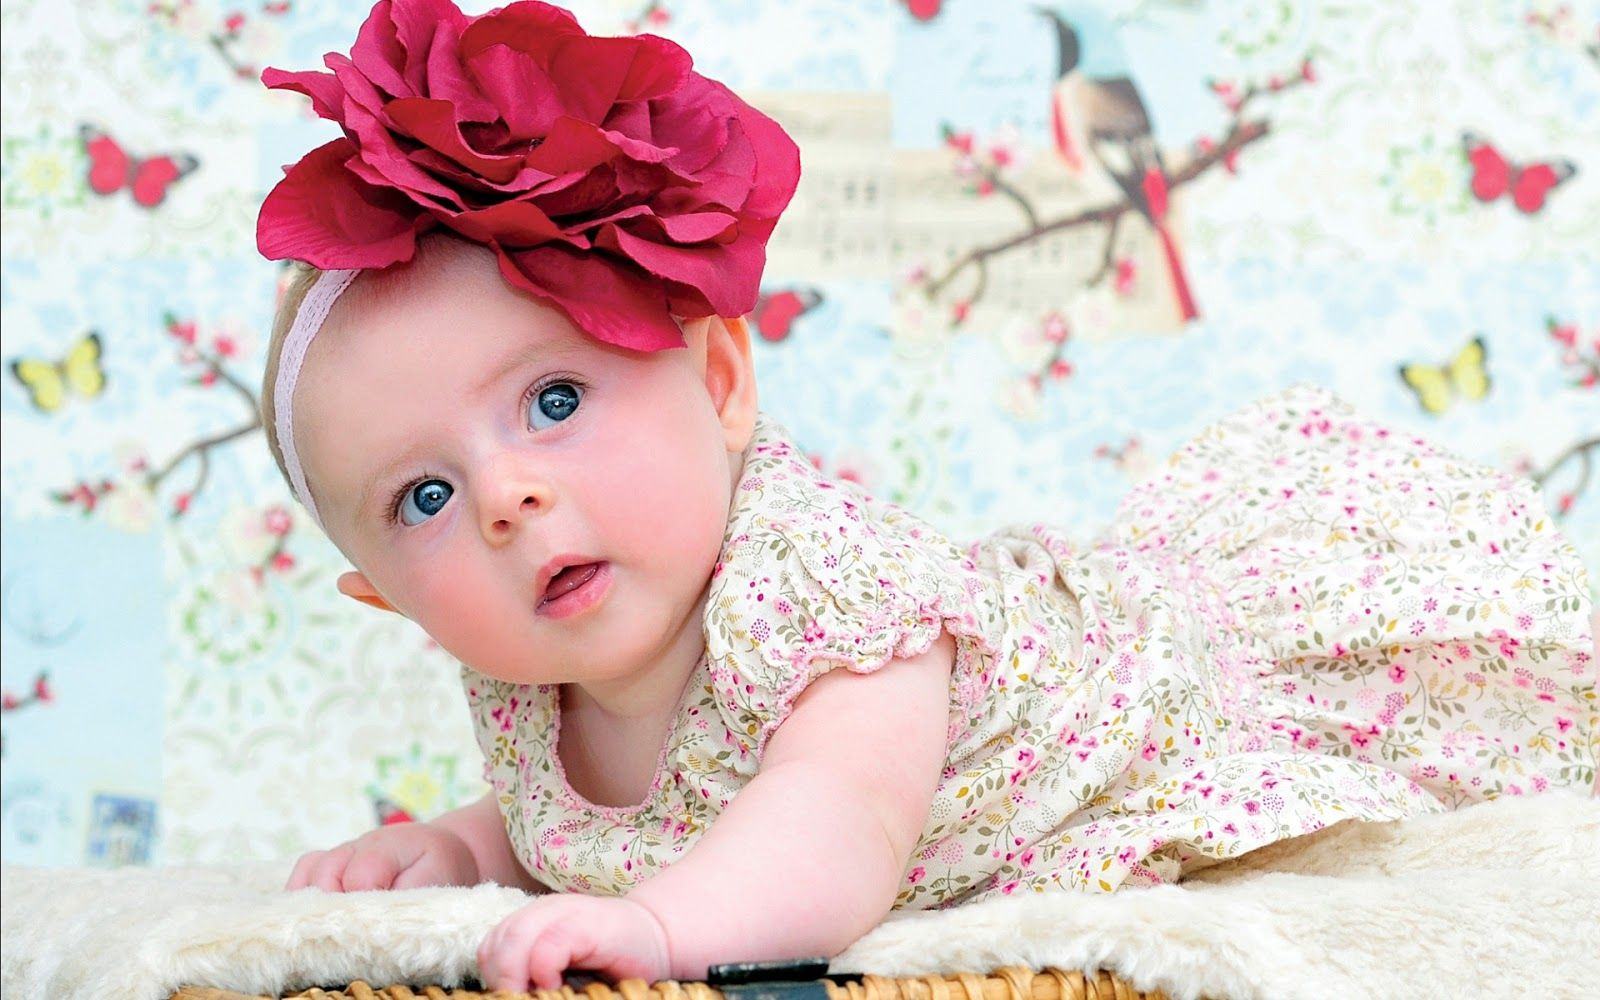 Wallpaper download of baby - Cute Baby Picture Hd Wallpaper Free Download 3d